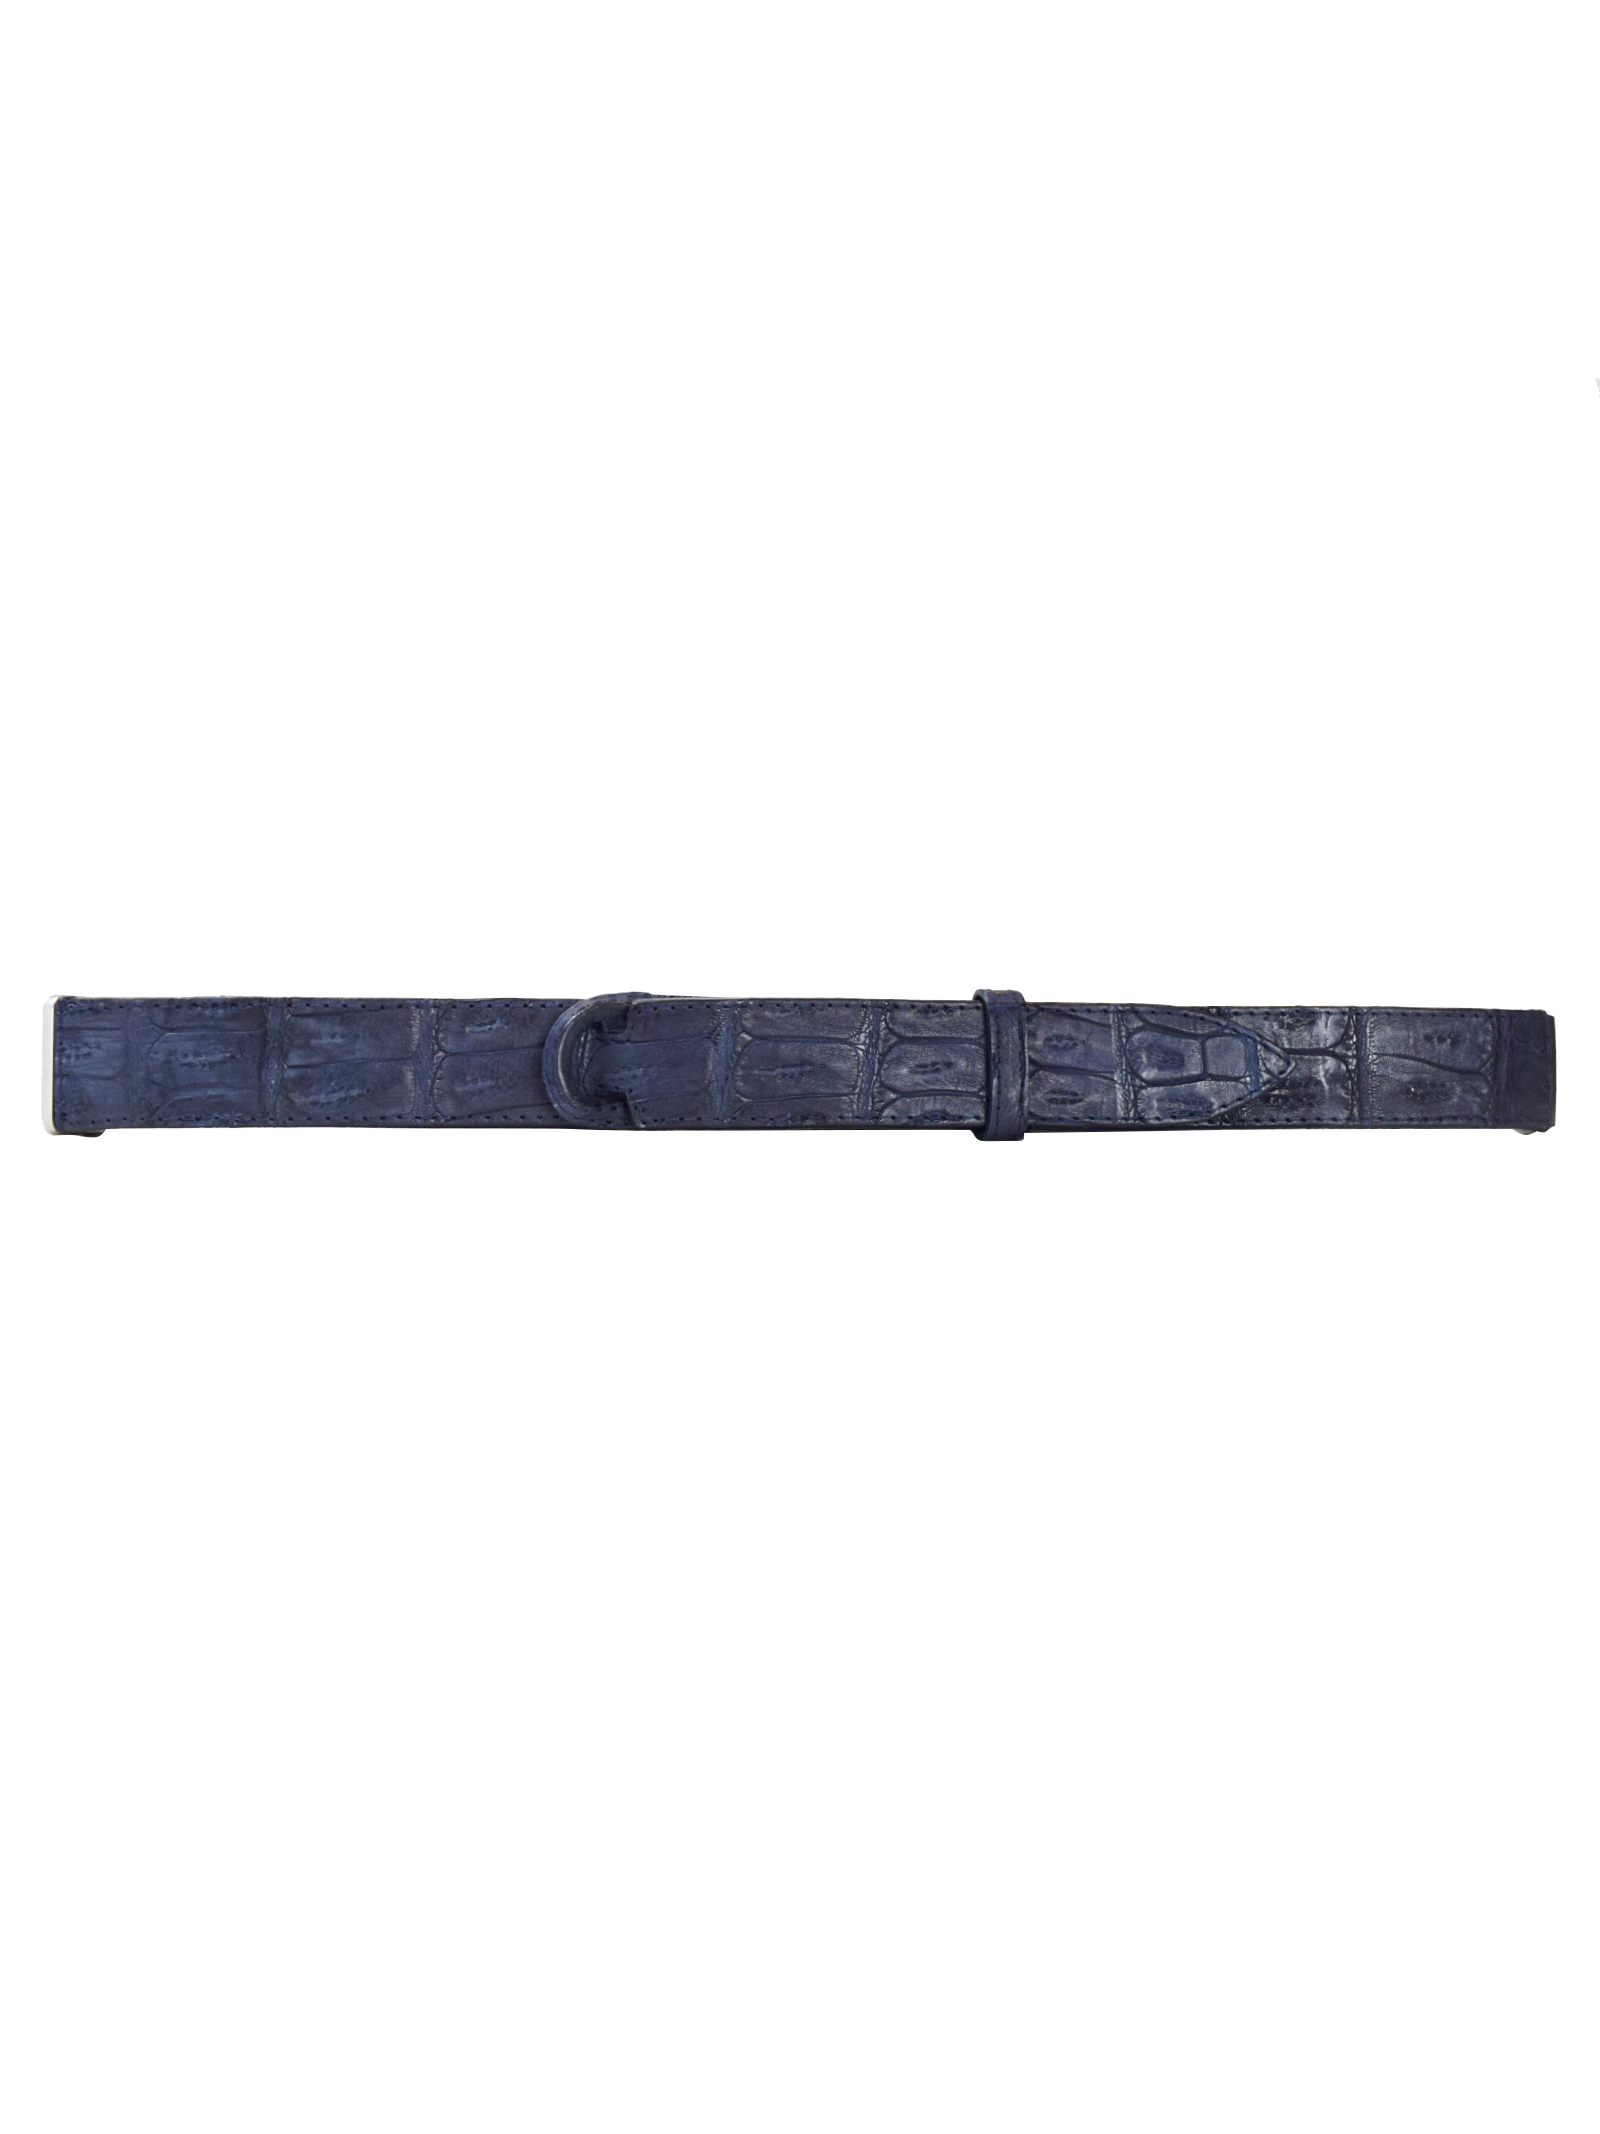 NO BUCKLE by Orciani |  | 31BLU